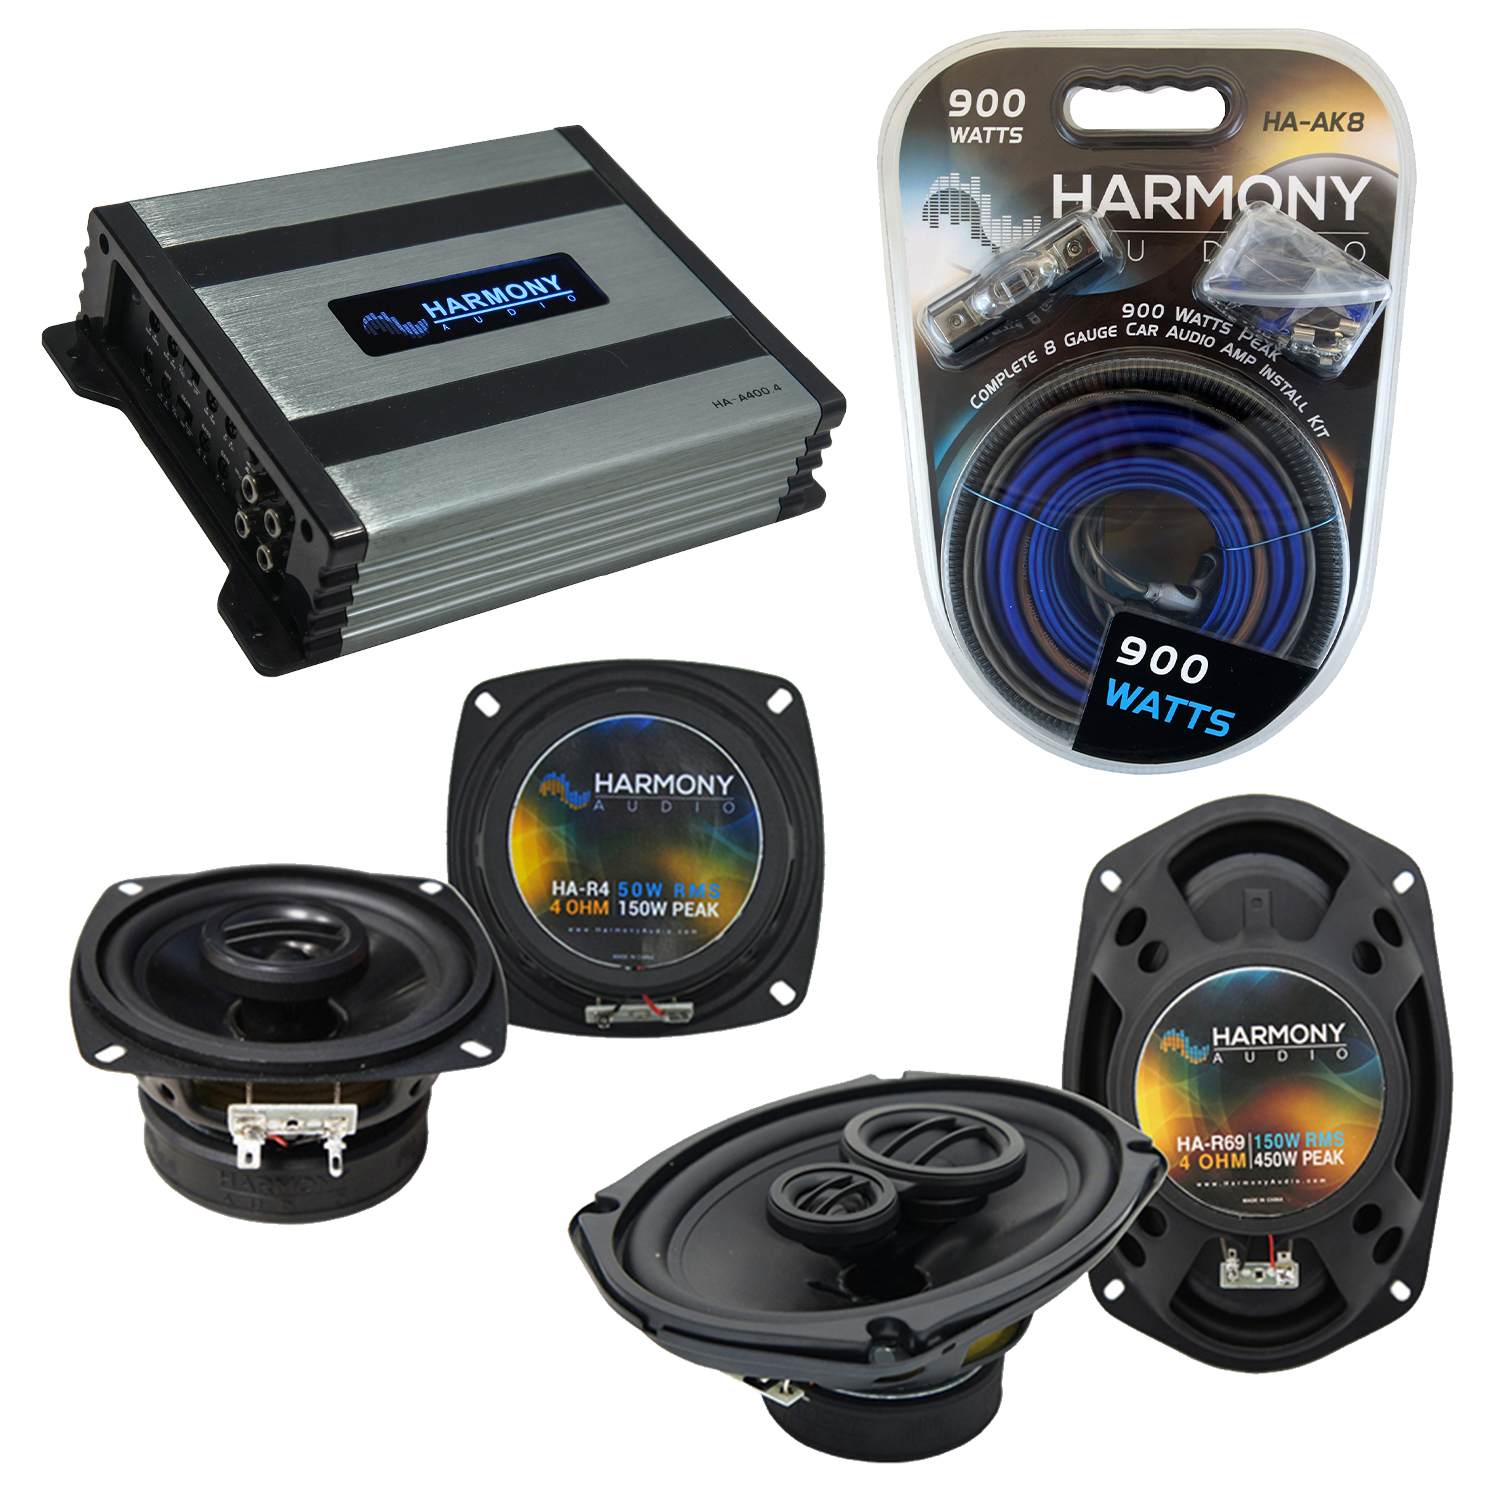 Compatible with Infiniti M30 1990-1992 OEM Speaker Replacement Harmony R4 R69 & Harmony HA-A400.4 Amp